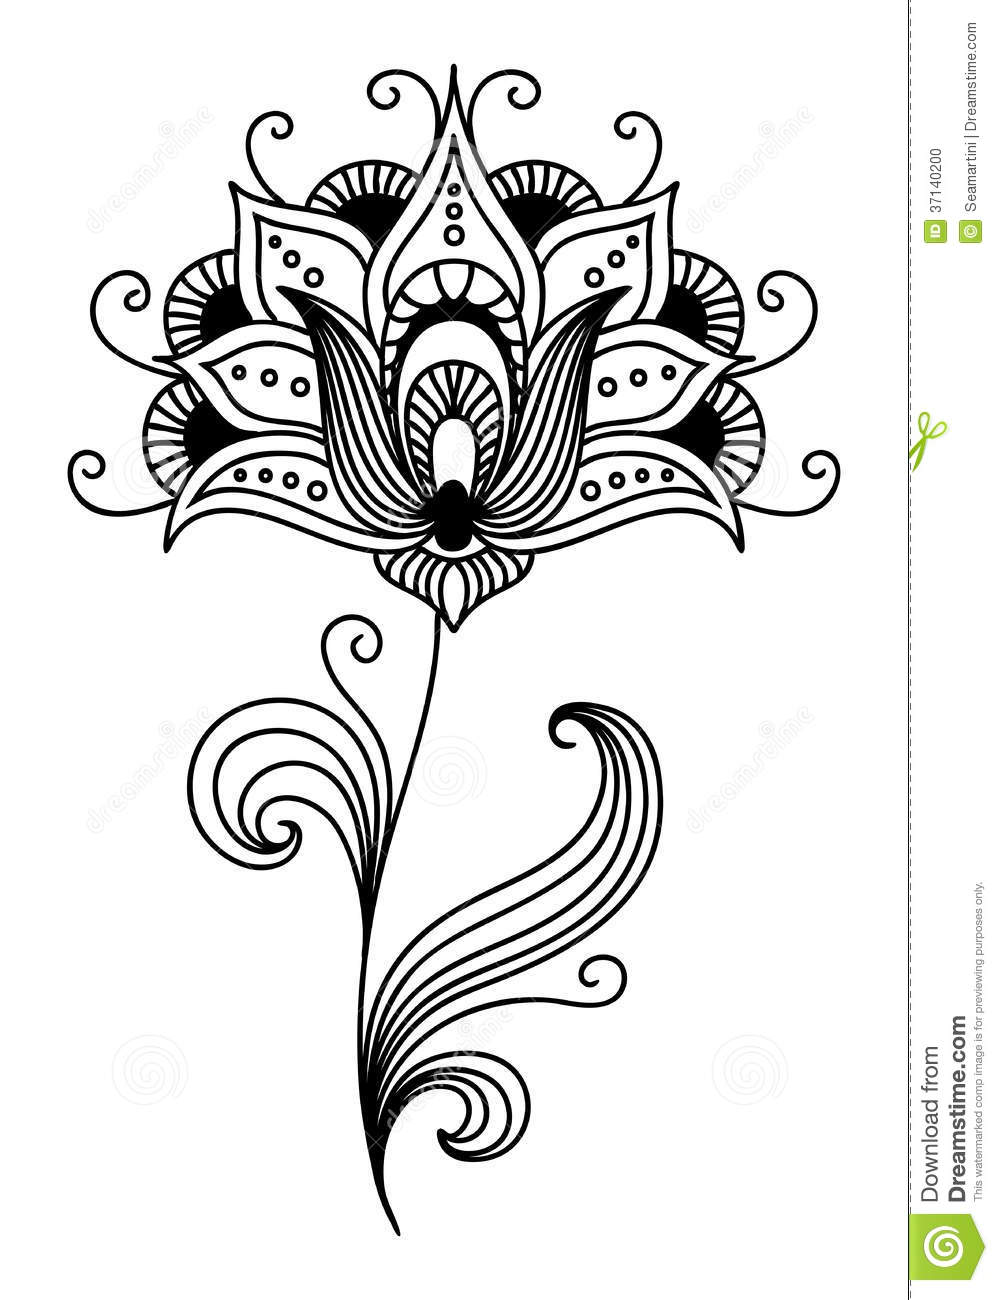 Ornate Persian Floral Design Stock Vector Illustration Of